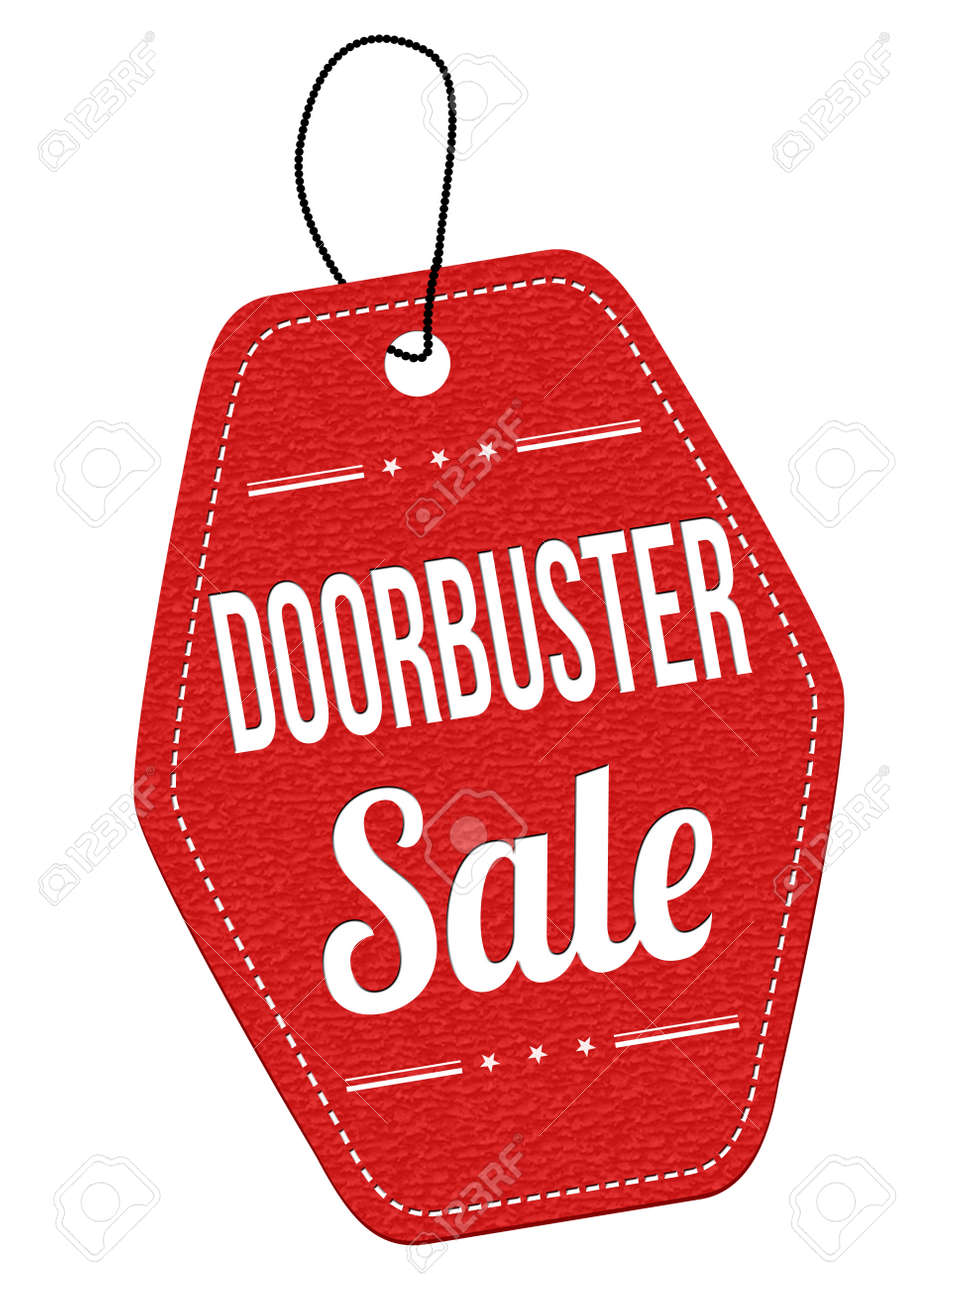 Door buster sale red leather label or price tag on white background Stock Vector - 49703476  sc 1 st  123RF.com & Door Buster Sale Red Leather Label Or Price Tag On White Background ...